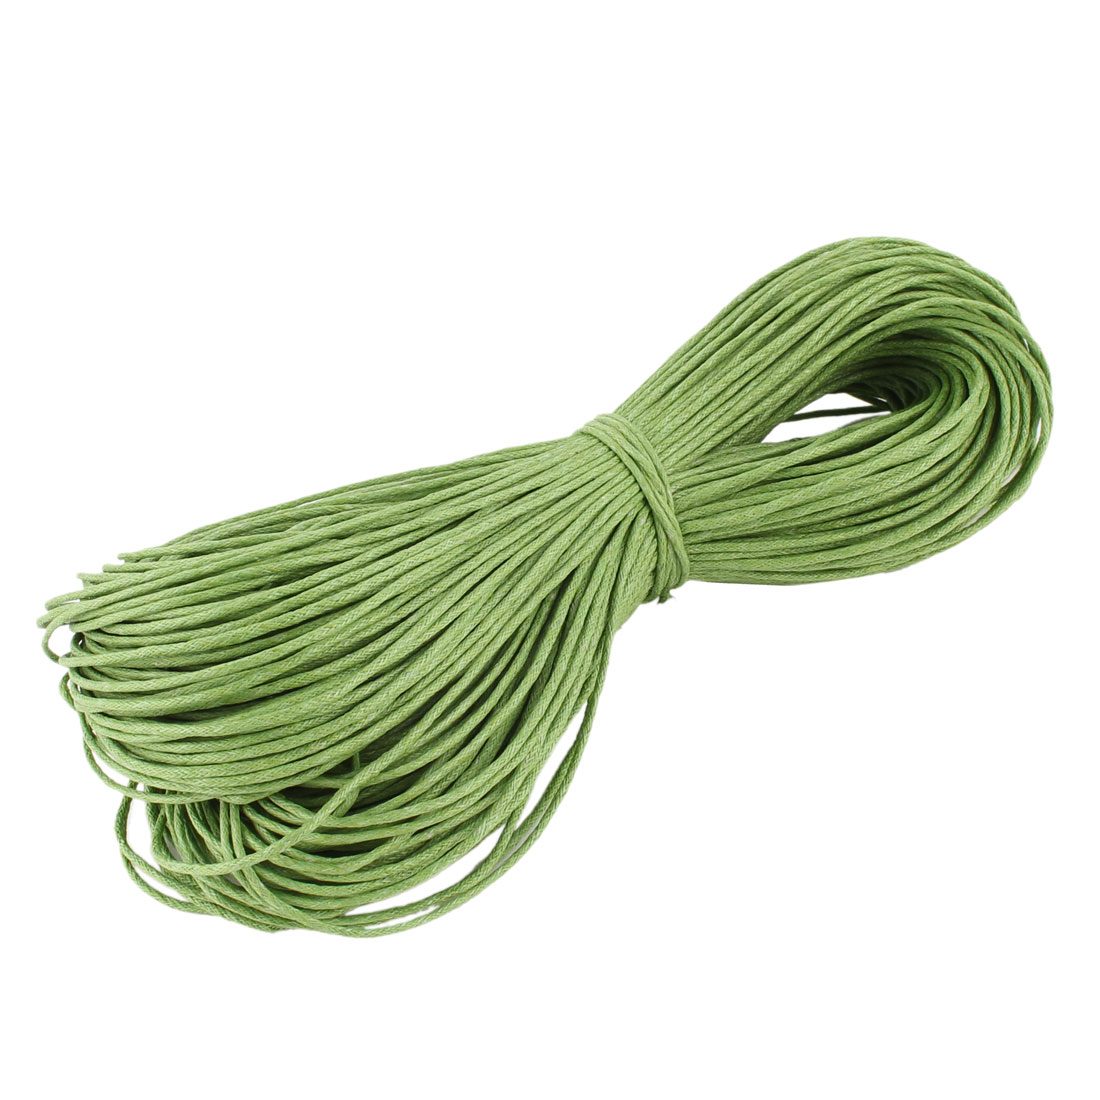 Bracelet Necklace Round Faux Leather Making String Beading Thread Cord Light Green 80m Length